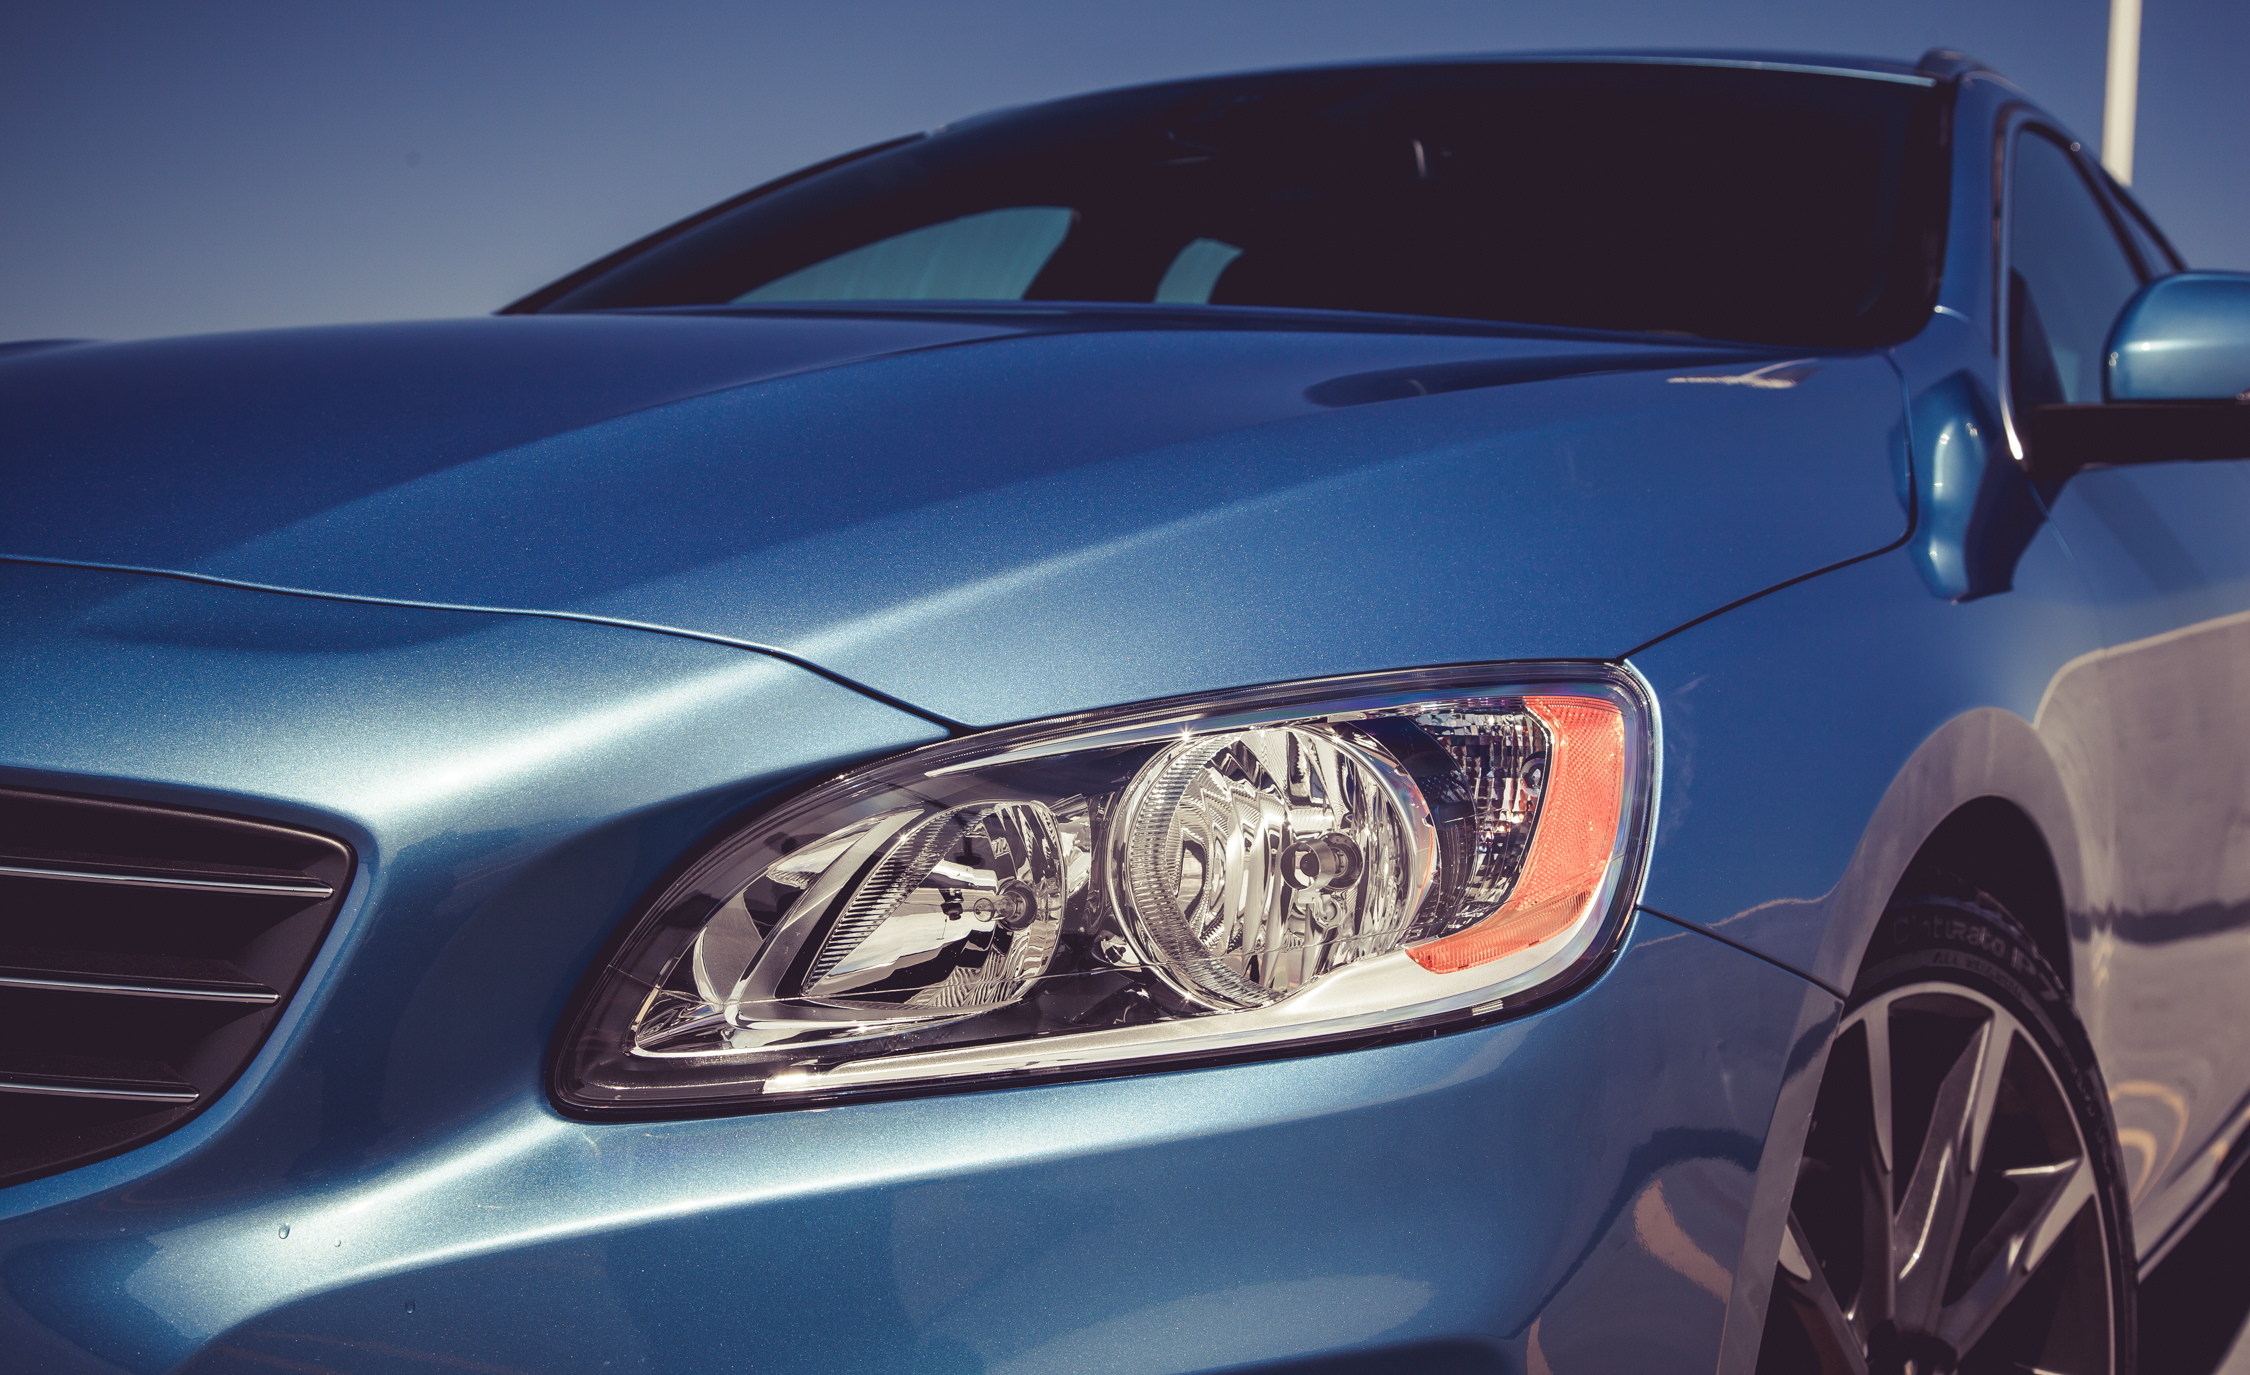 2015 Volvo V60 Headlight (Photo 13 of 38)